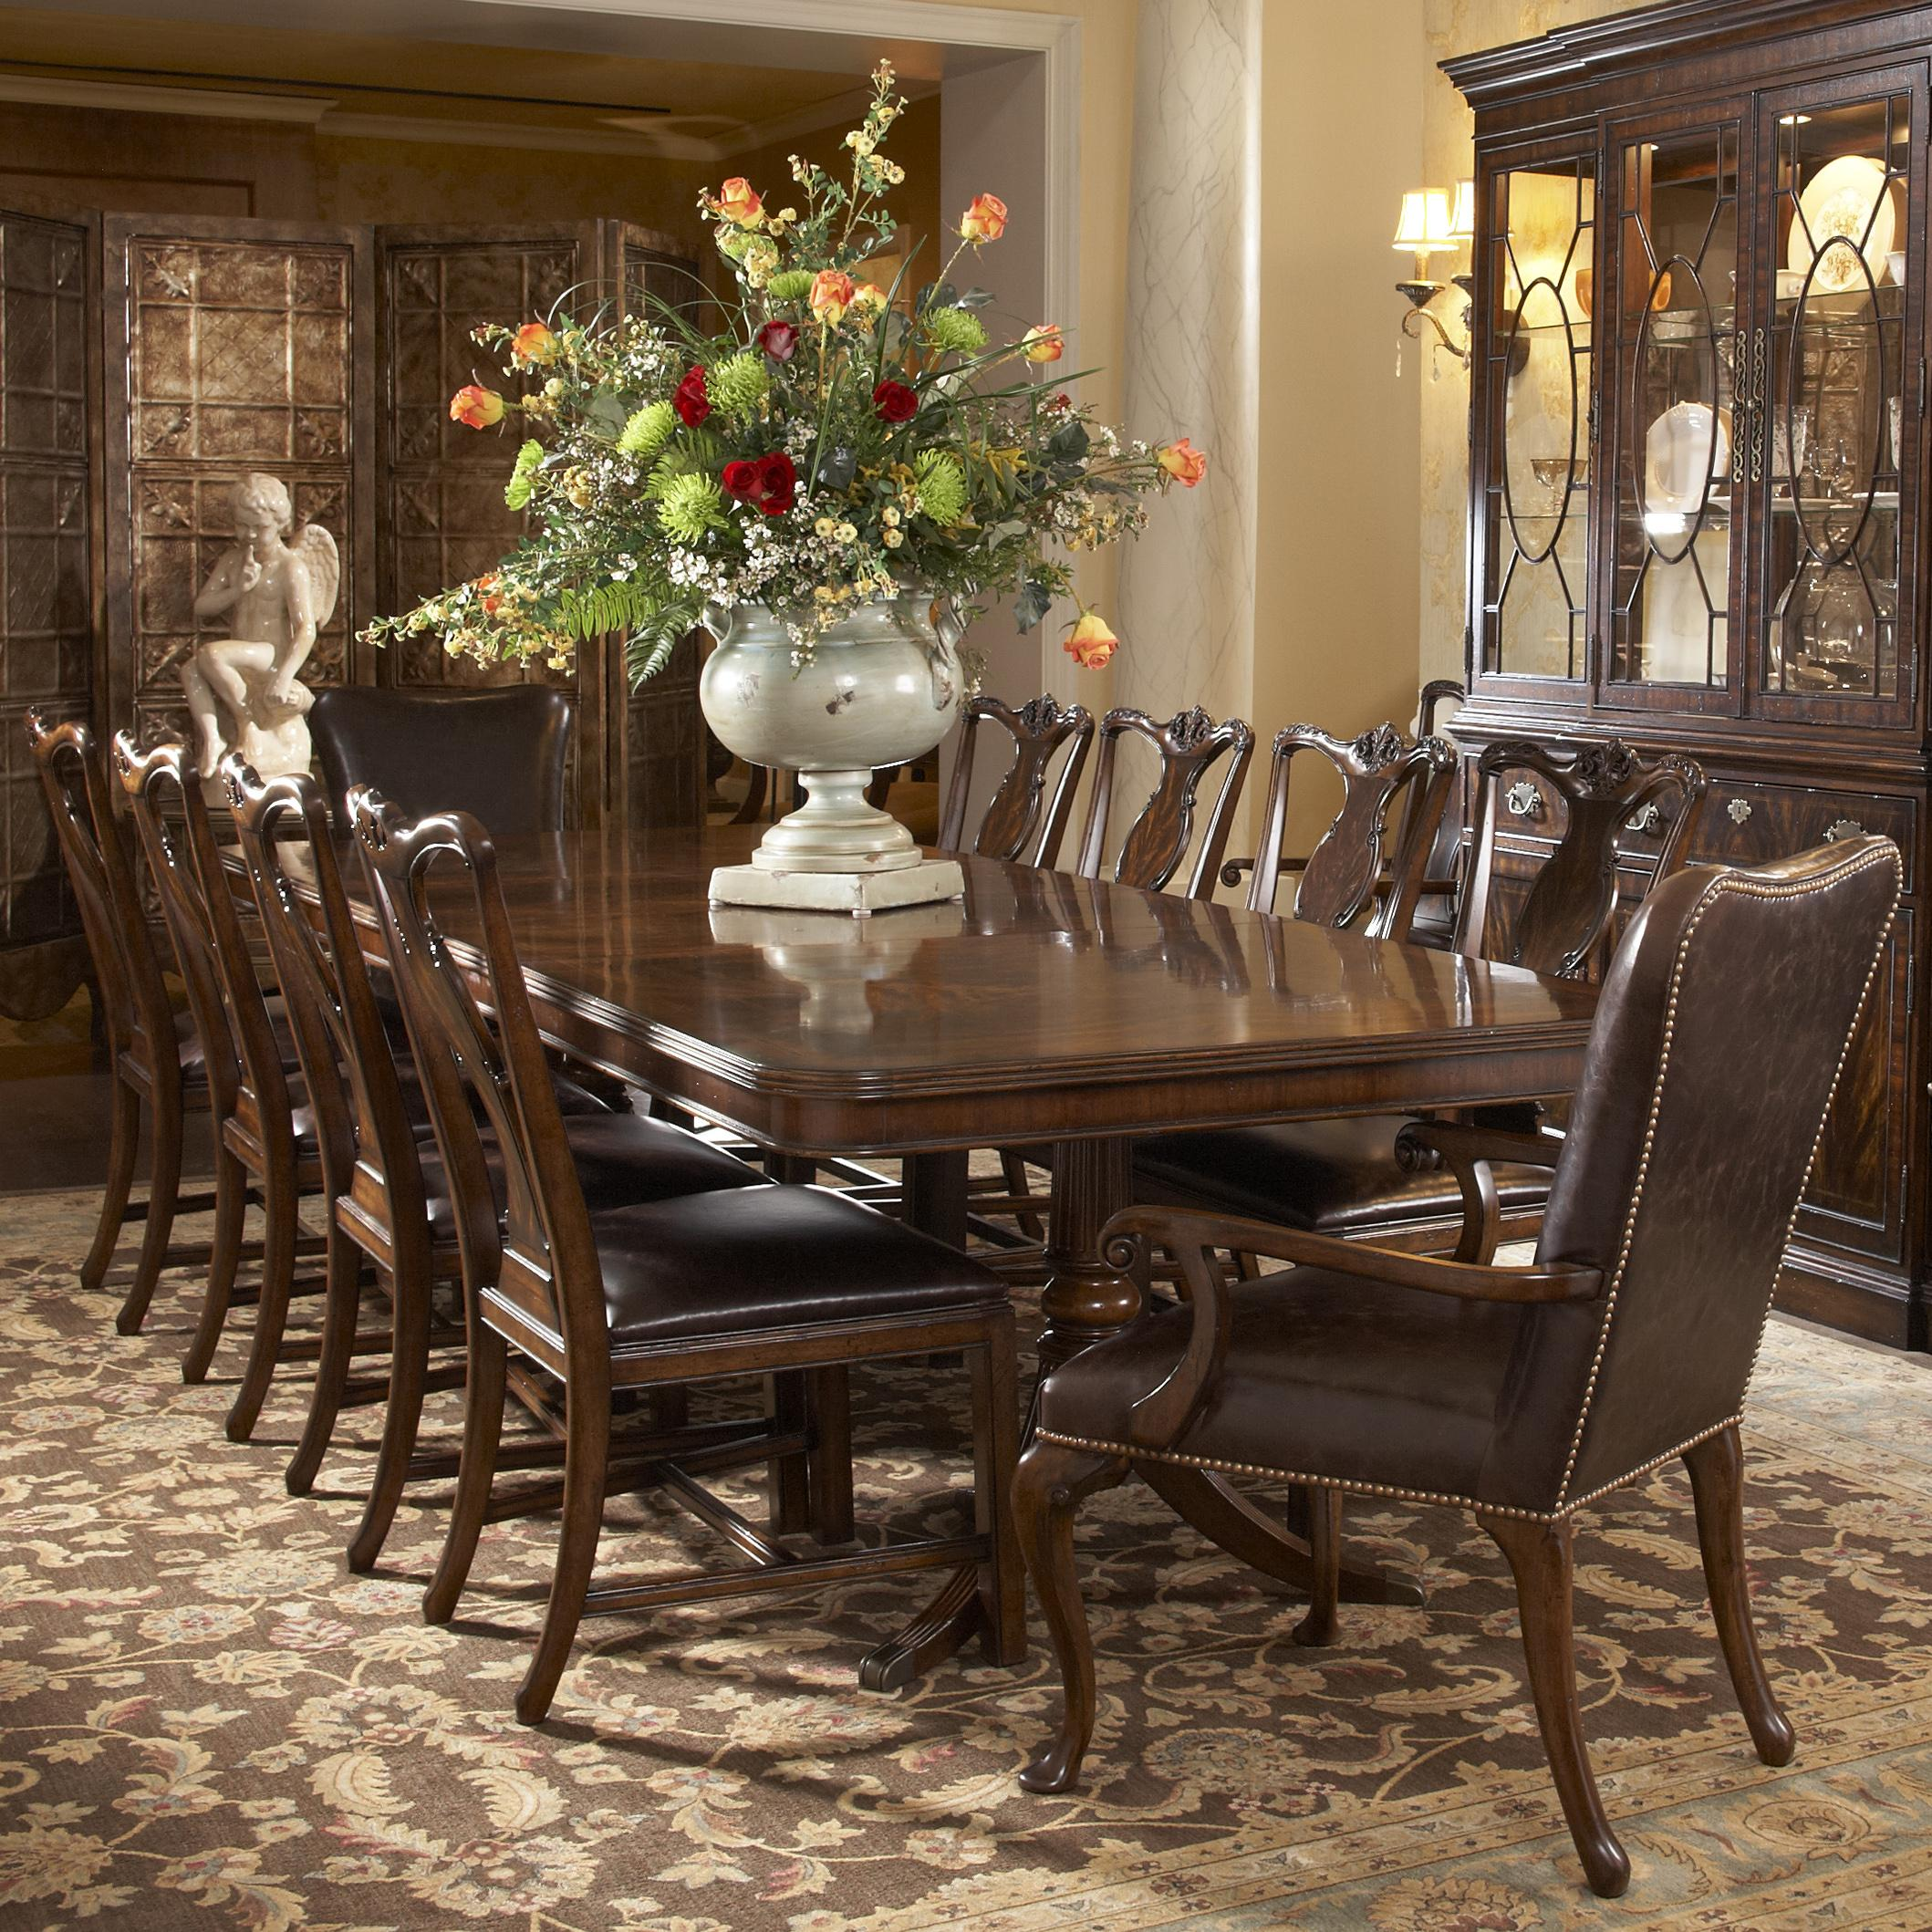 chairs for kitchen table 11 Piece Double Pedestal Dining Table and Splat Back Side Chair with Leather Upholstered Arm Chairs